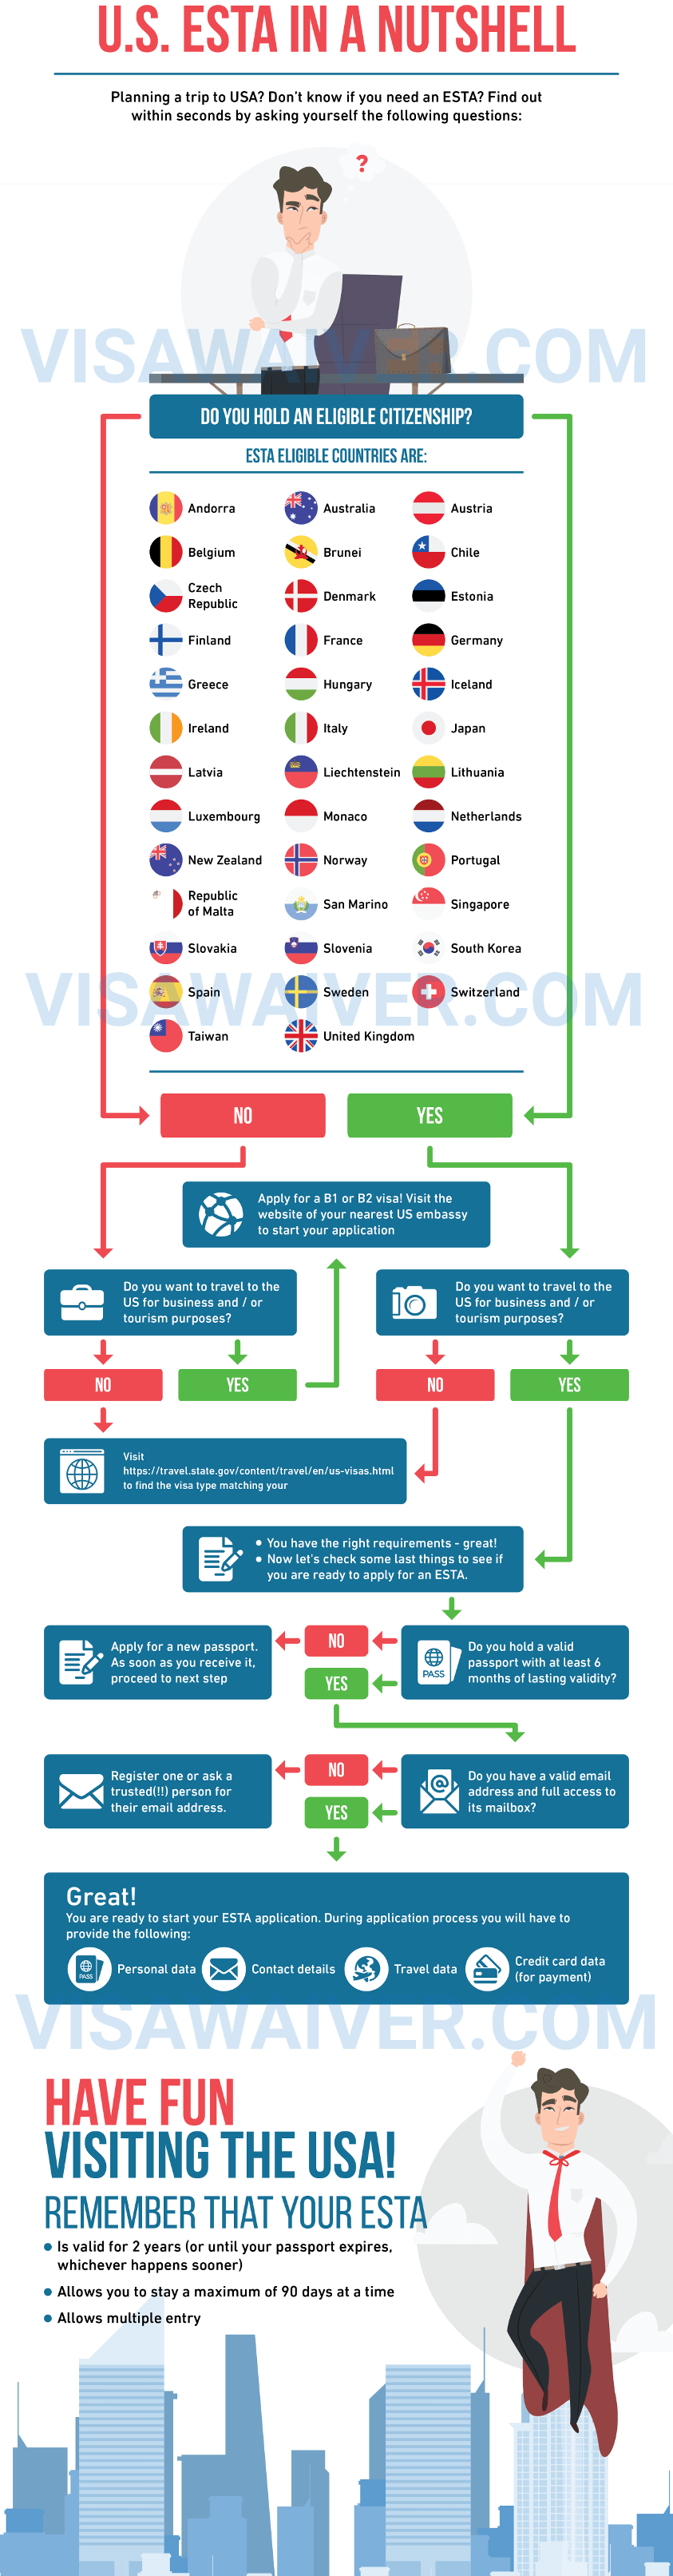 Do i need an ESTA? Find out using this info graphic